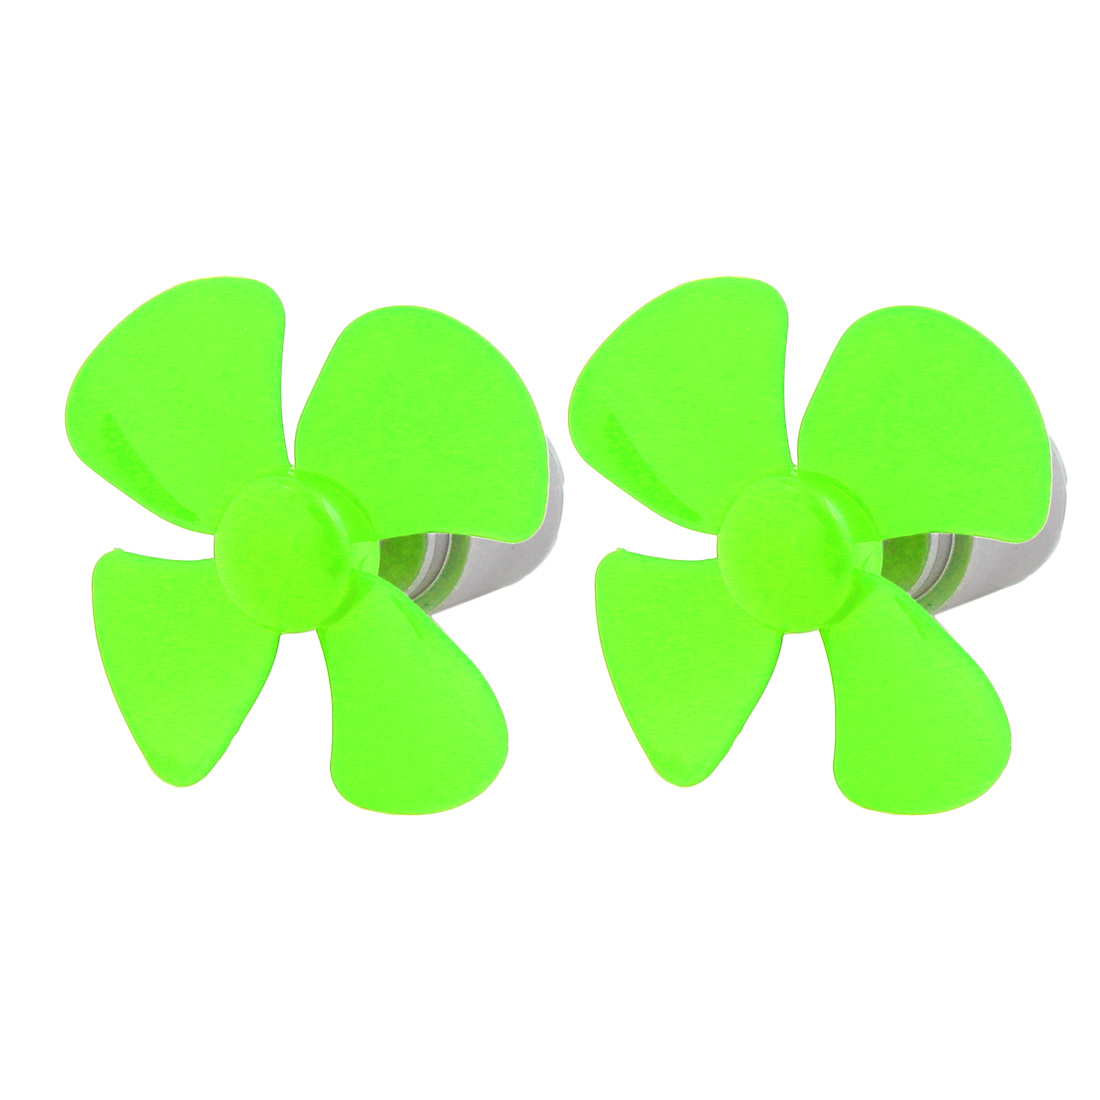 2pcs DC 3V 0.13A 11500RPM Green Strong Force Motor 4 Vanes 56mm Dia Propeller for RC Aircraft